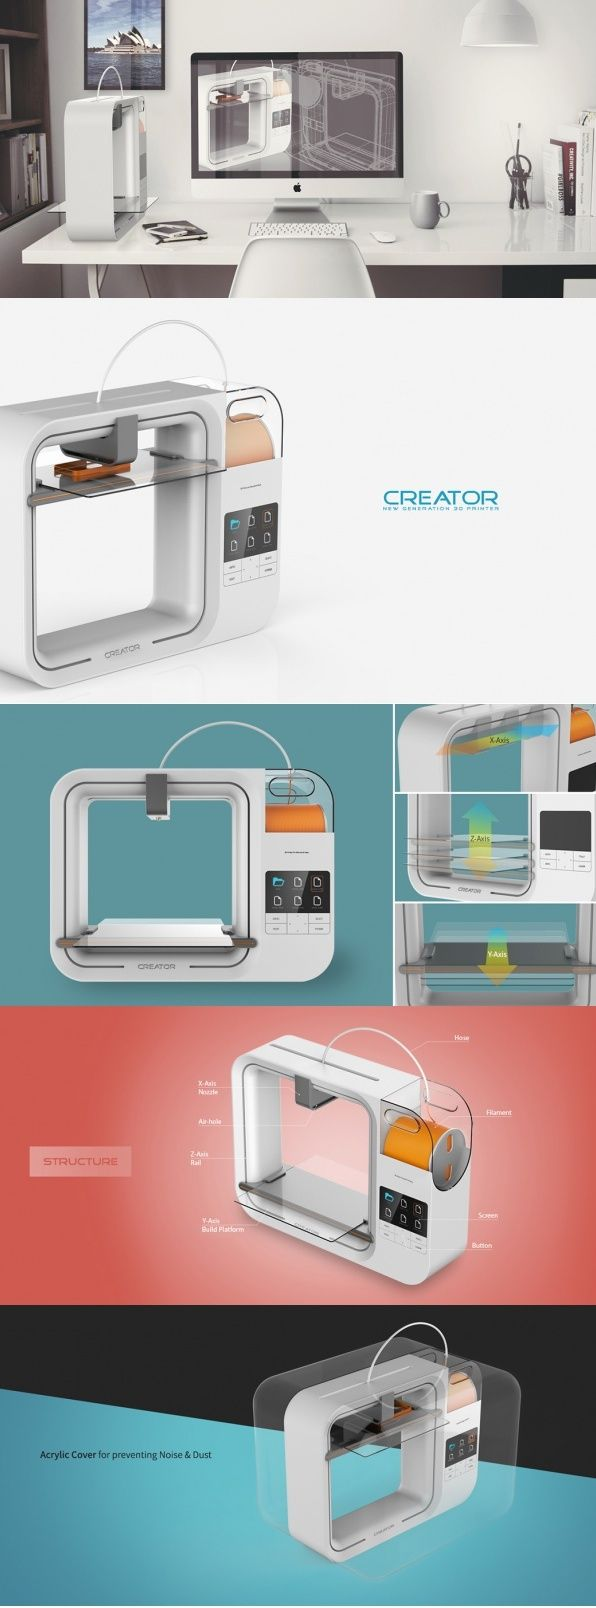 Unique D Printer Designs Ideas On Pinterest D Printer - 5 facts didnt know 3d printers yet